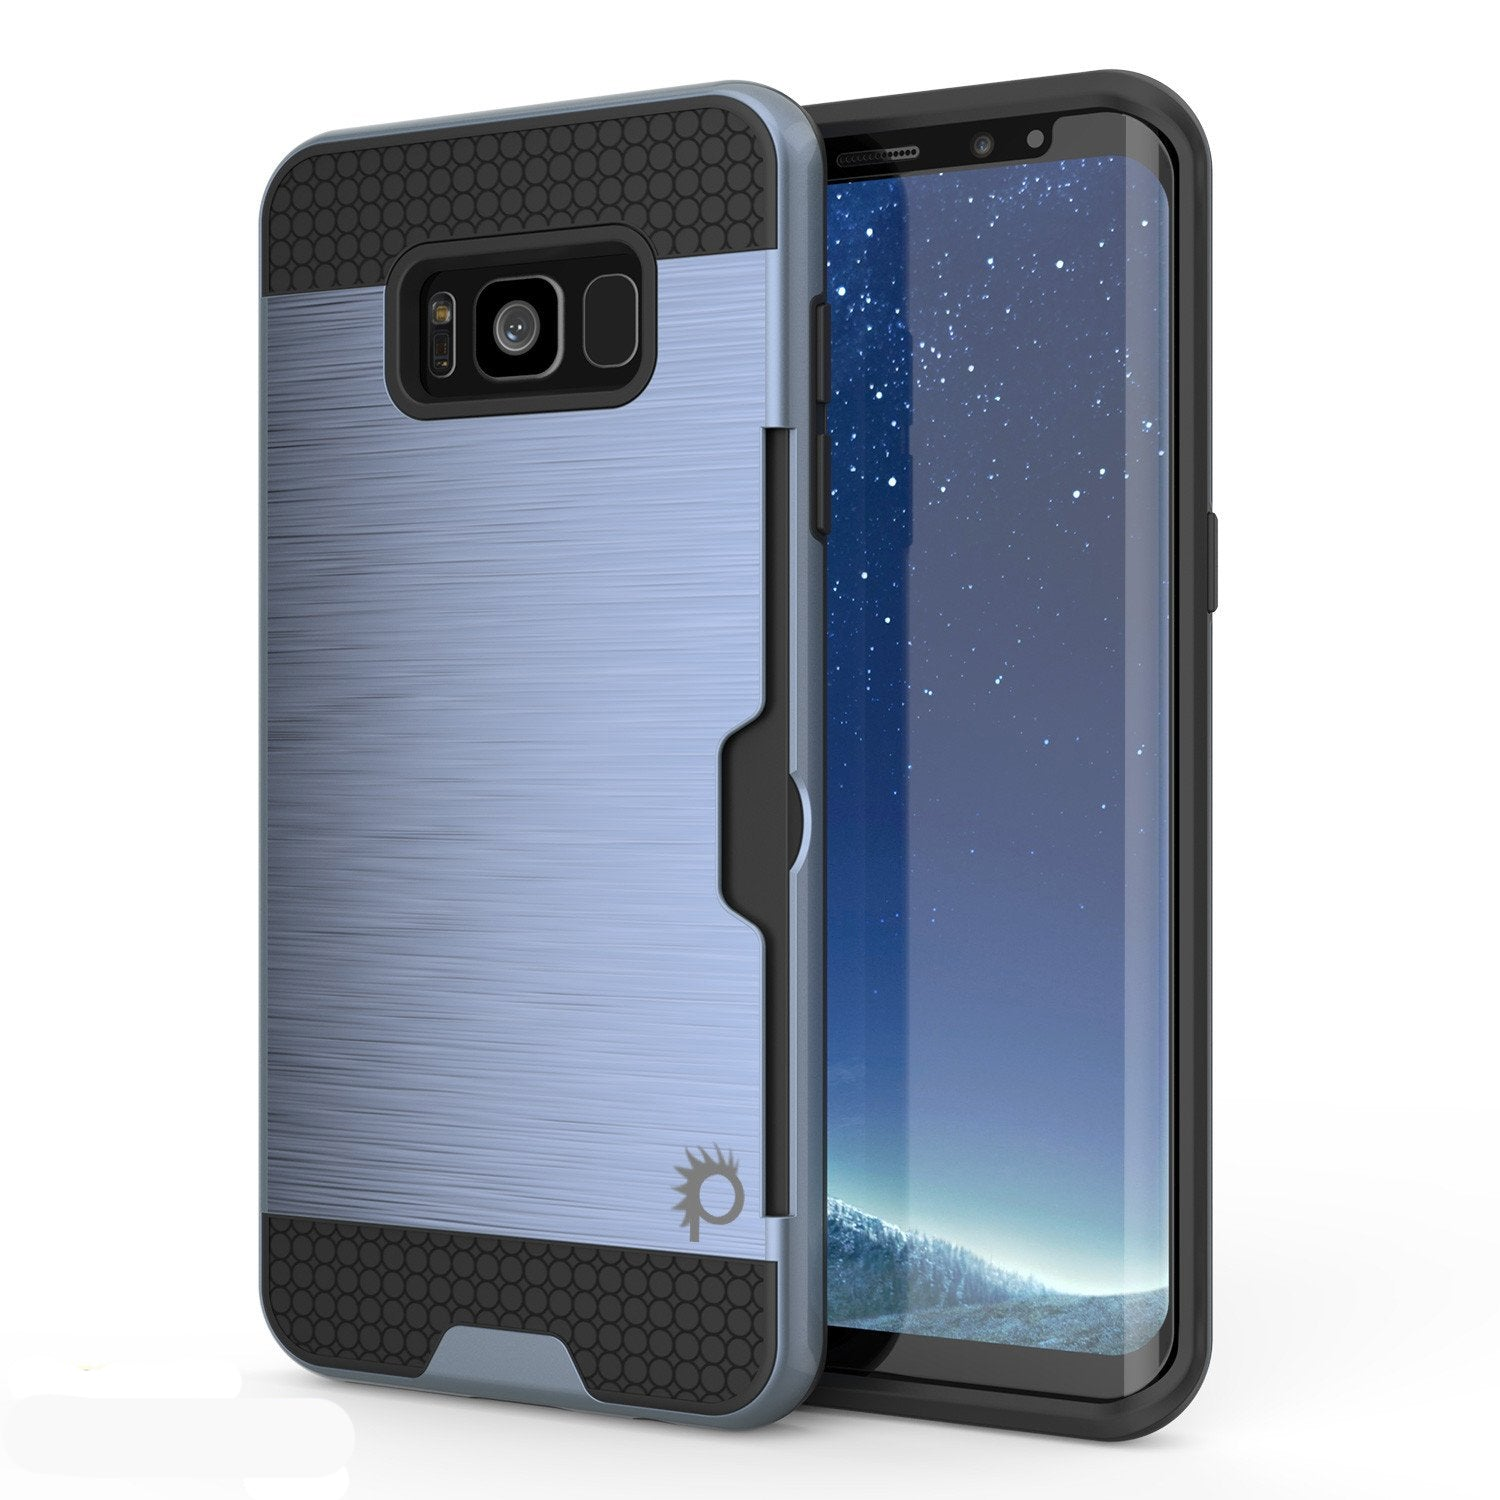 Galaxy S8 Case, PUNKcase [SLOT Series] [Slim Fit] Dual-Layer Armor Cover w/Integrated Anti-Shock System, Credit Card Slot [Navy]